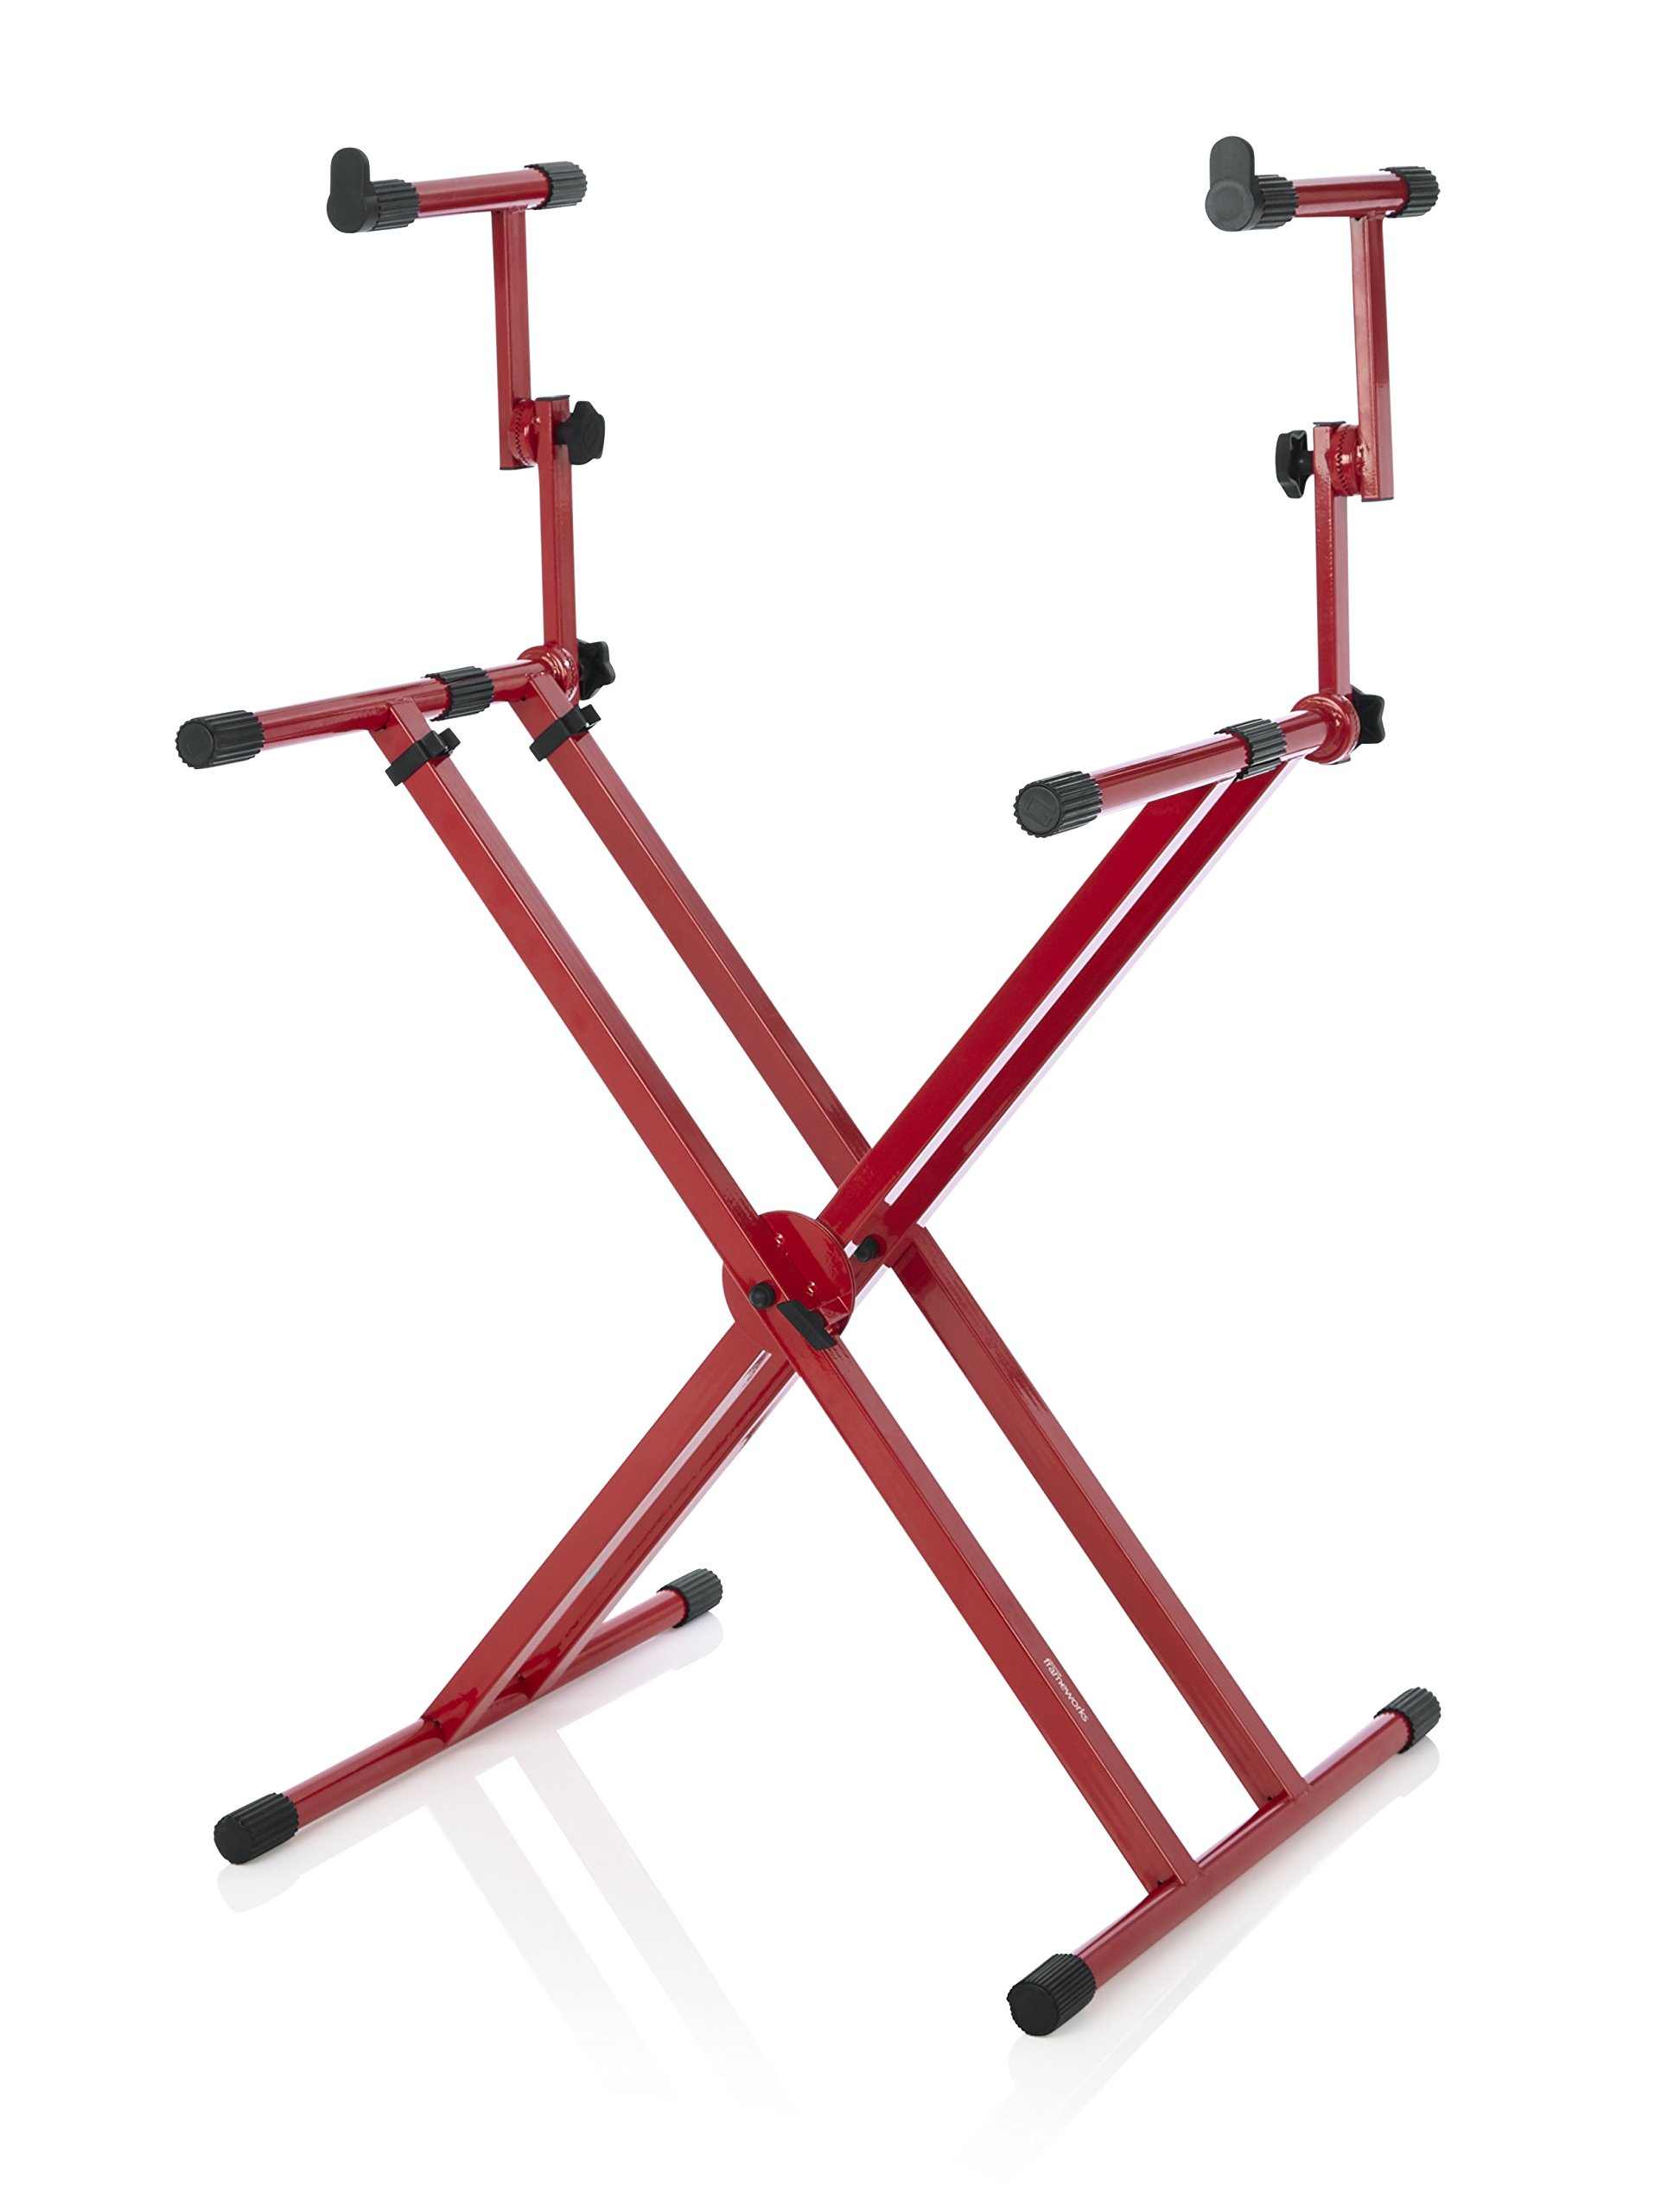 Gator Frameworks GFW-KEY-5100XRED Deluxe Two Tier X Style Keyboard Stand, Nord Red